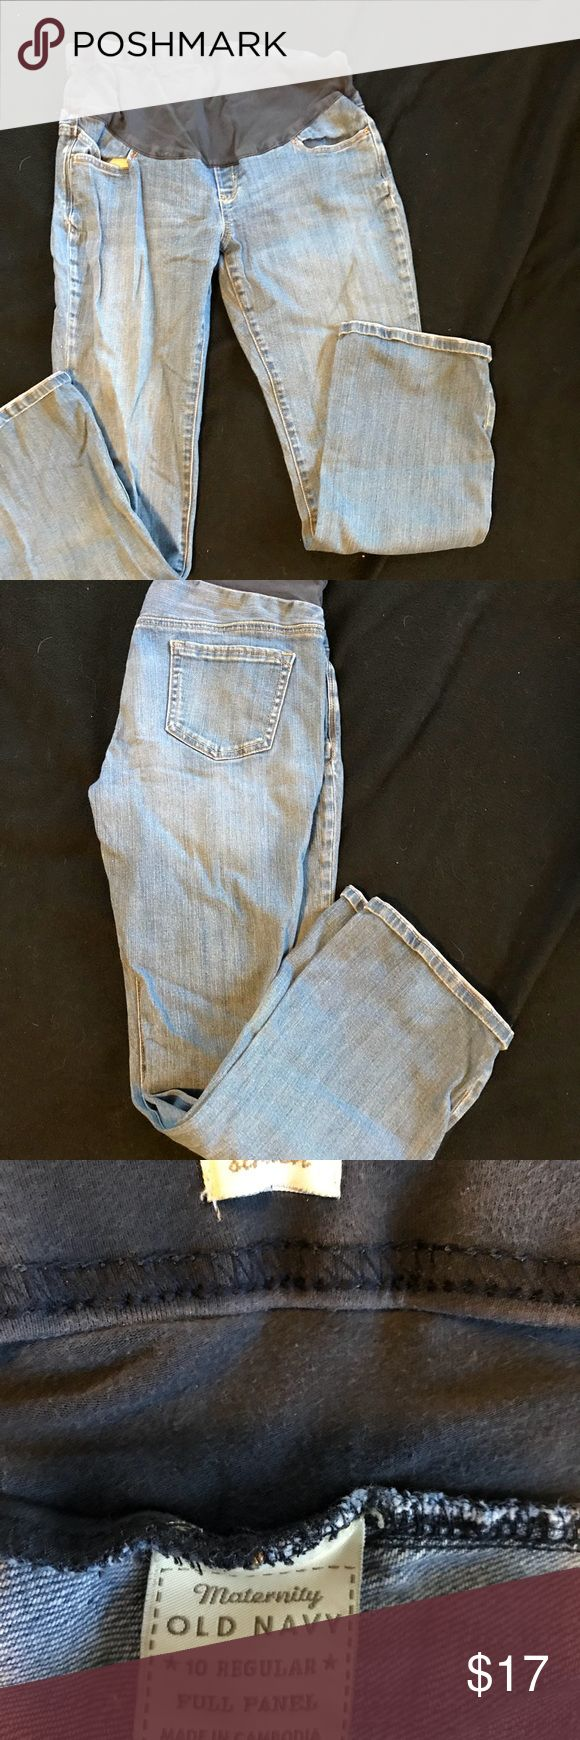 Old navy maternity jeans Old navy maternity jeans Old Navy Pants Straight Leg